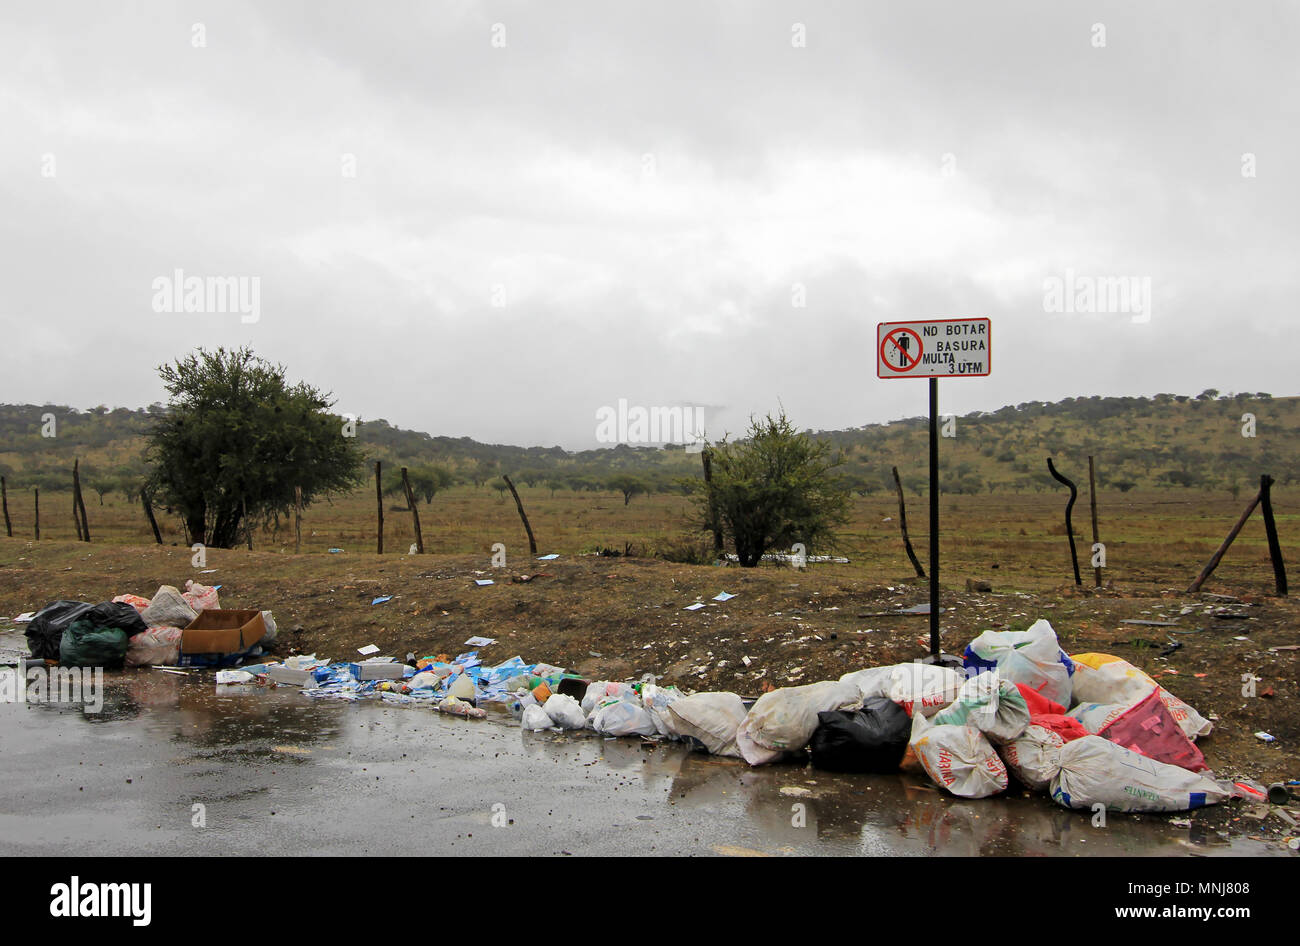 Littering of garbage in front of do not litter sign, Chile - Stock Image